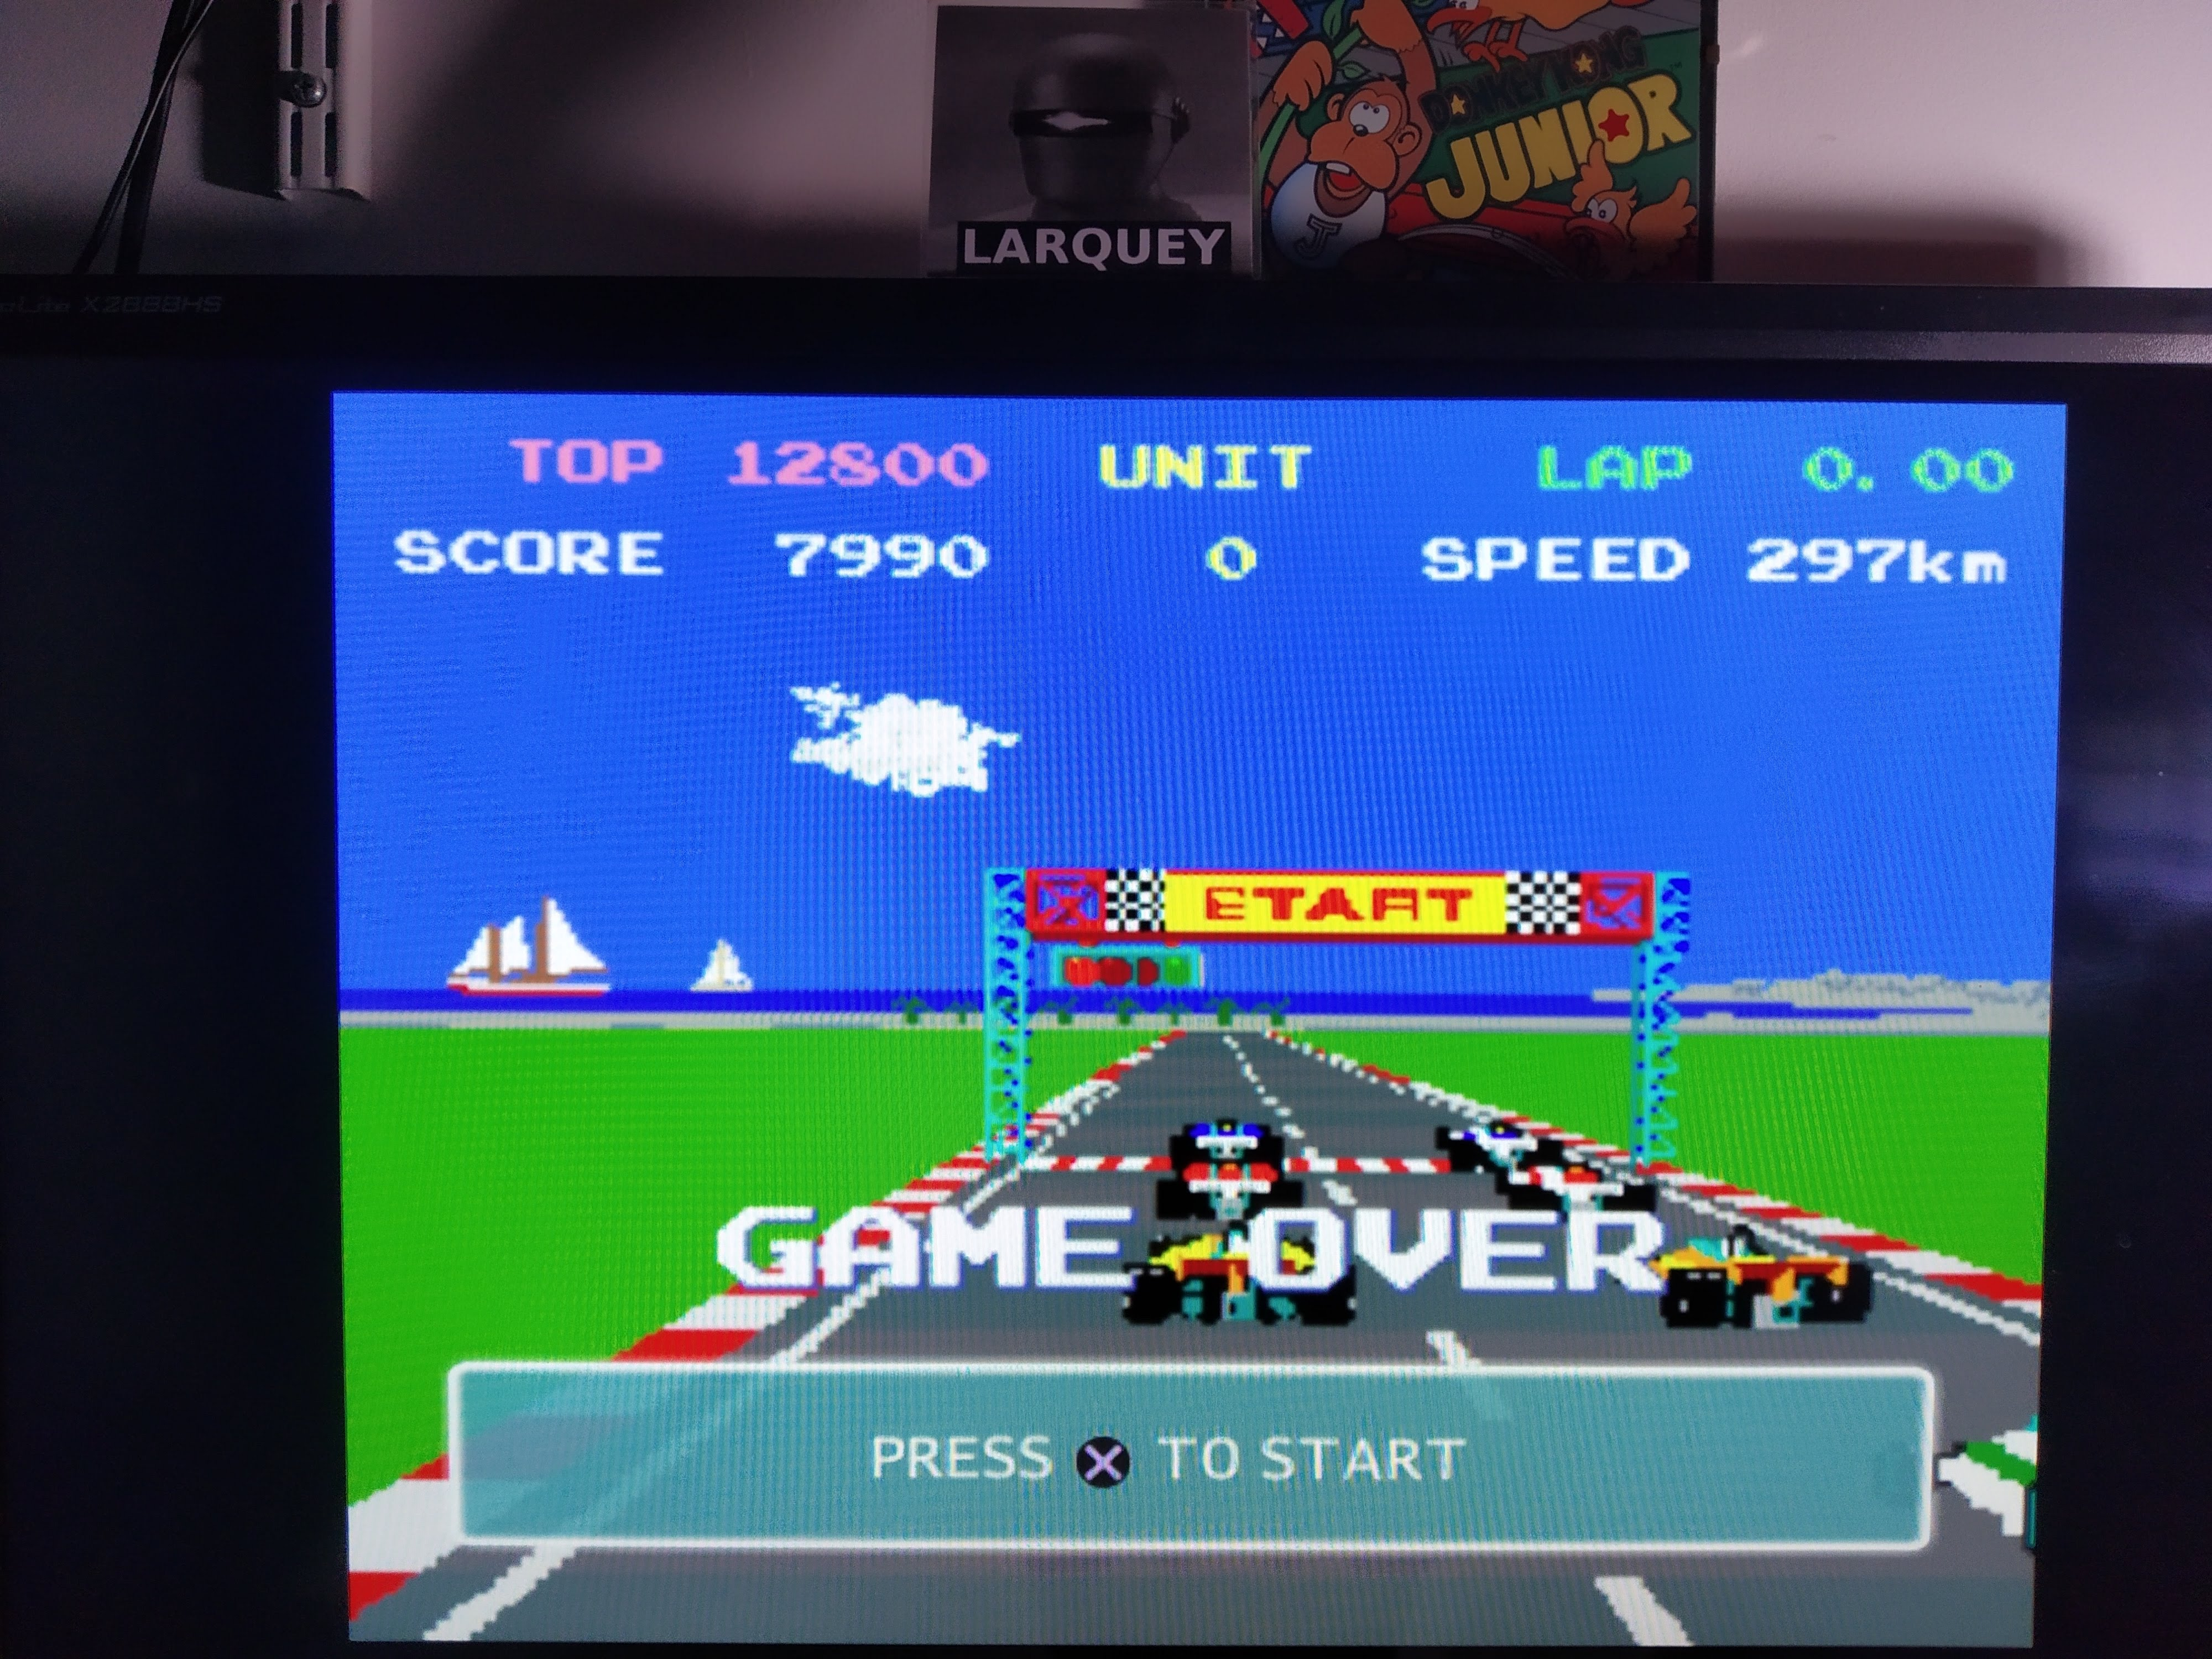 Larquey: Namco Museum 50th Anniversary: Pole Position II [Wonder Circuit] (Playstation 2 Emulated) 7,990 points on 2020-08-06 15:14:36